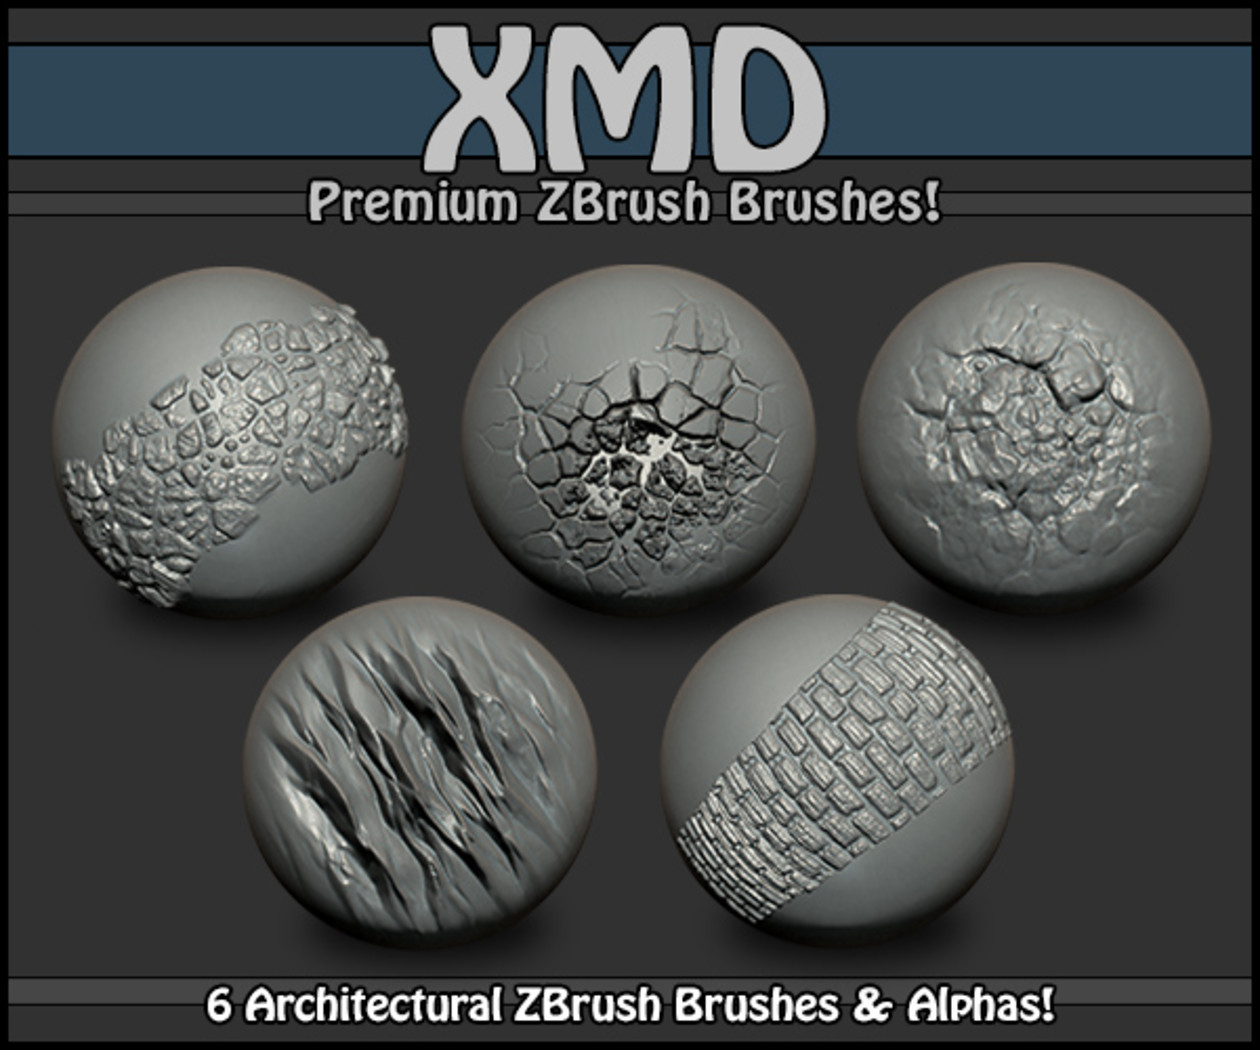 DcCustomZbrushBrushes Zbrush ZBrush Brush Set Zbrush